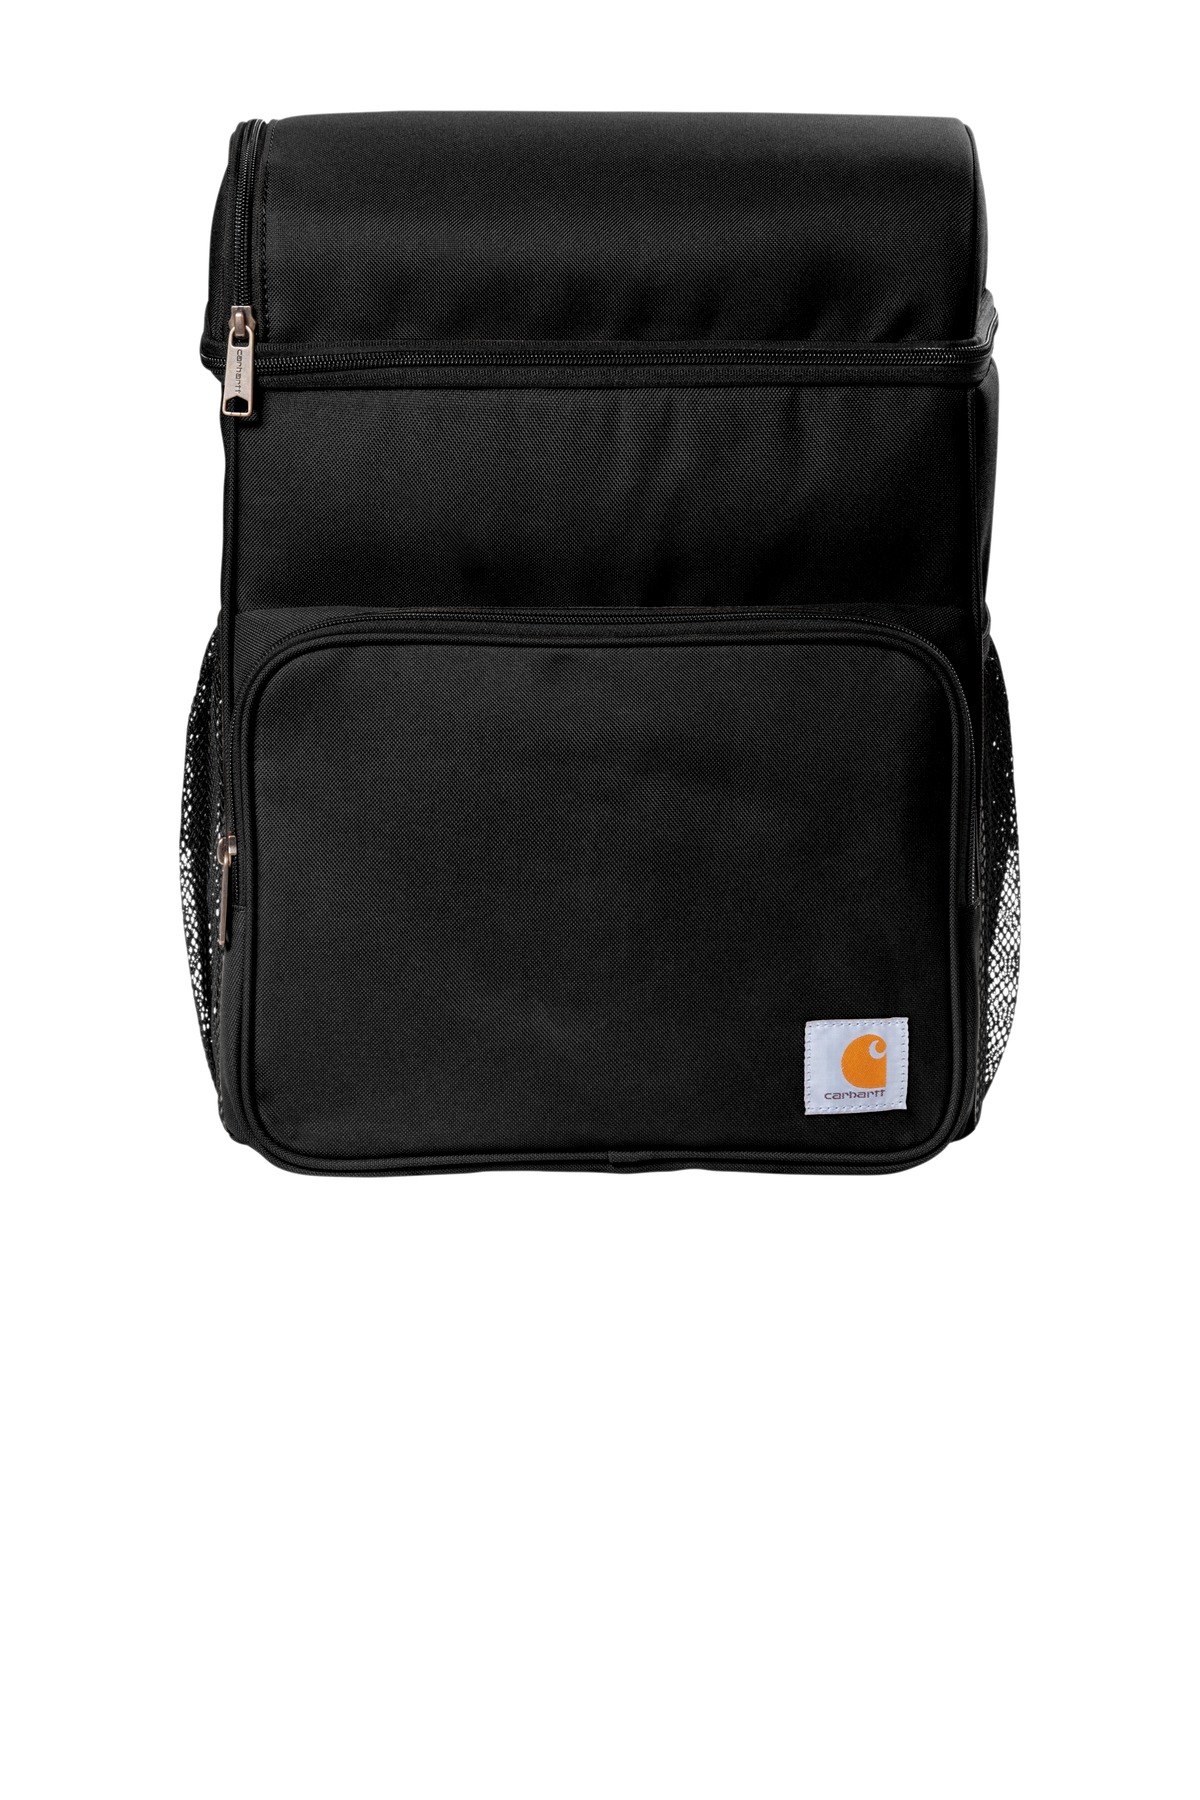 Carhartt ®  Backpack 20-Can Cooler. CT89132109 - Black